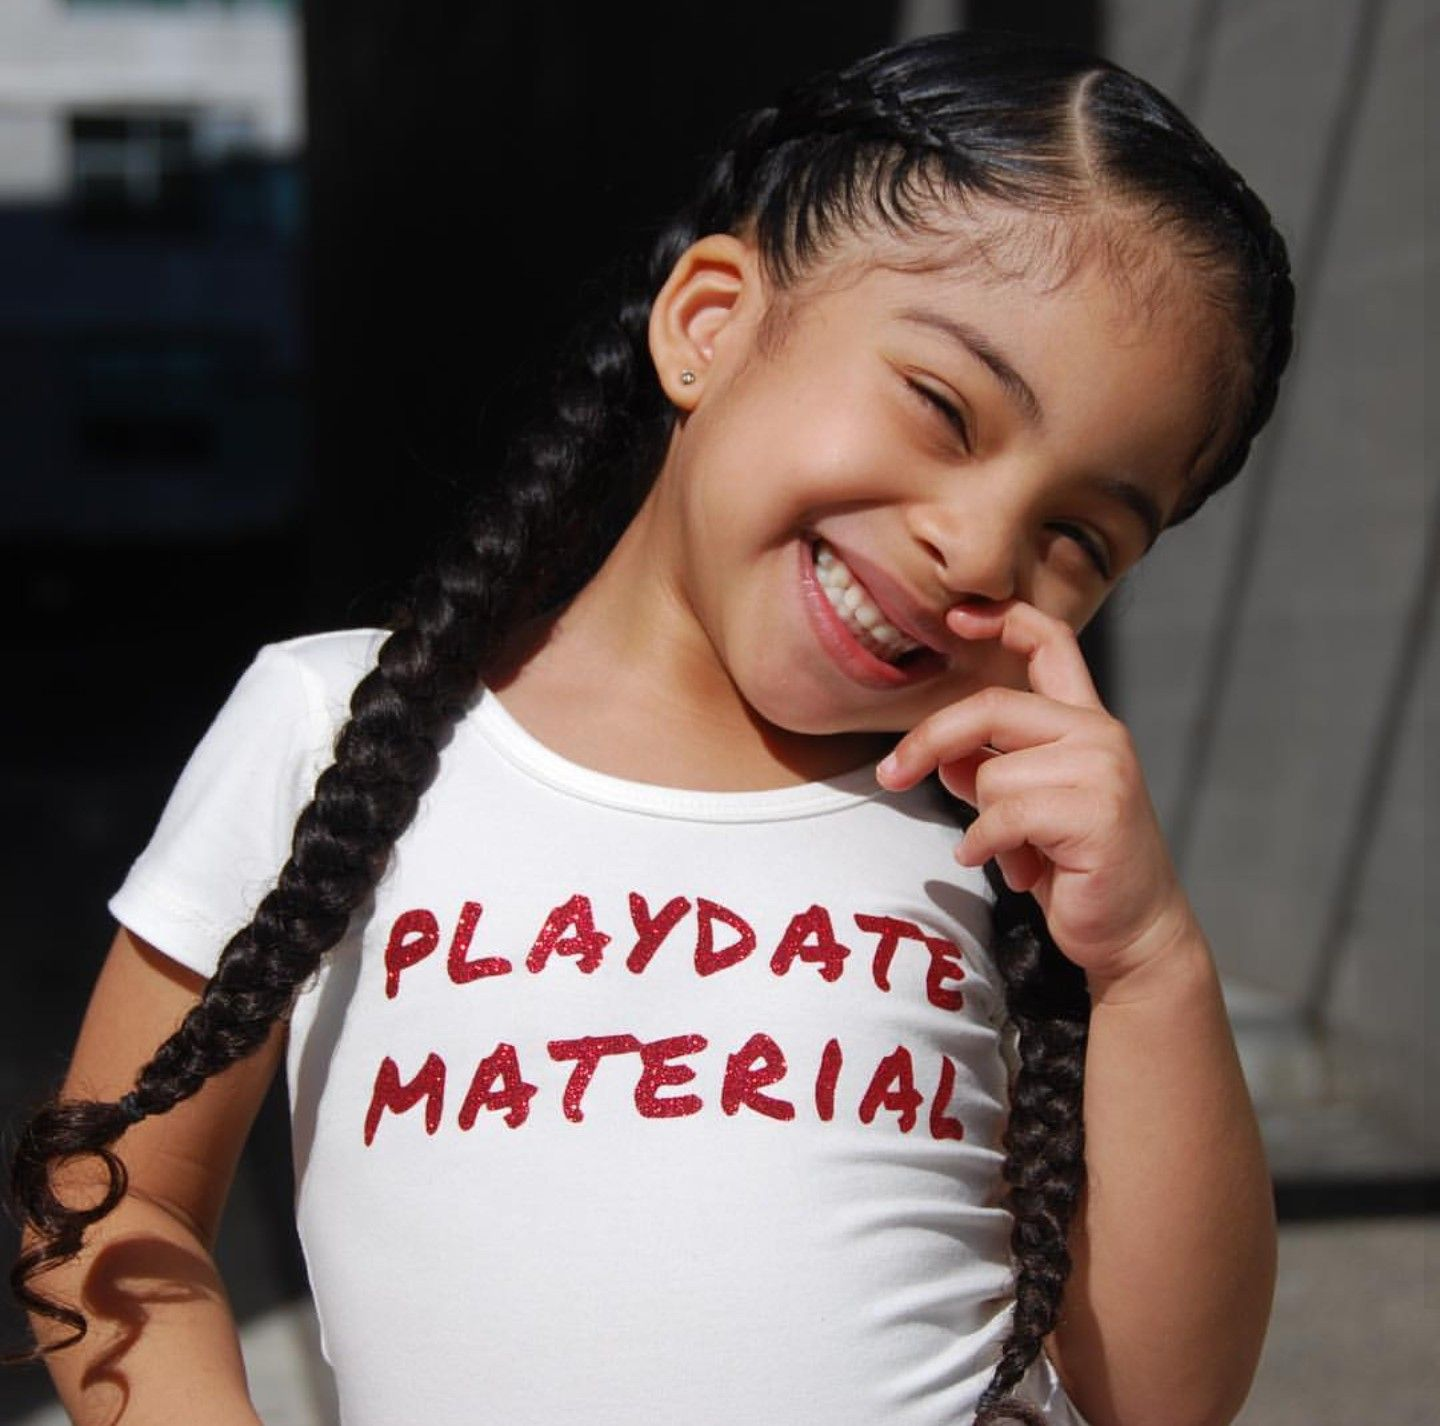 playdate material vinyl diy, cute kid, curly hair | diy shirt ideas